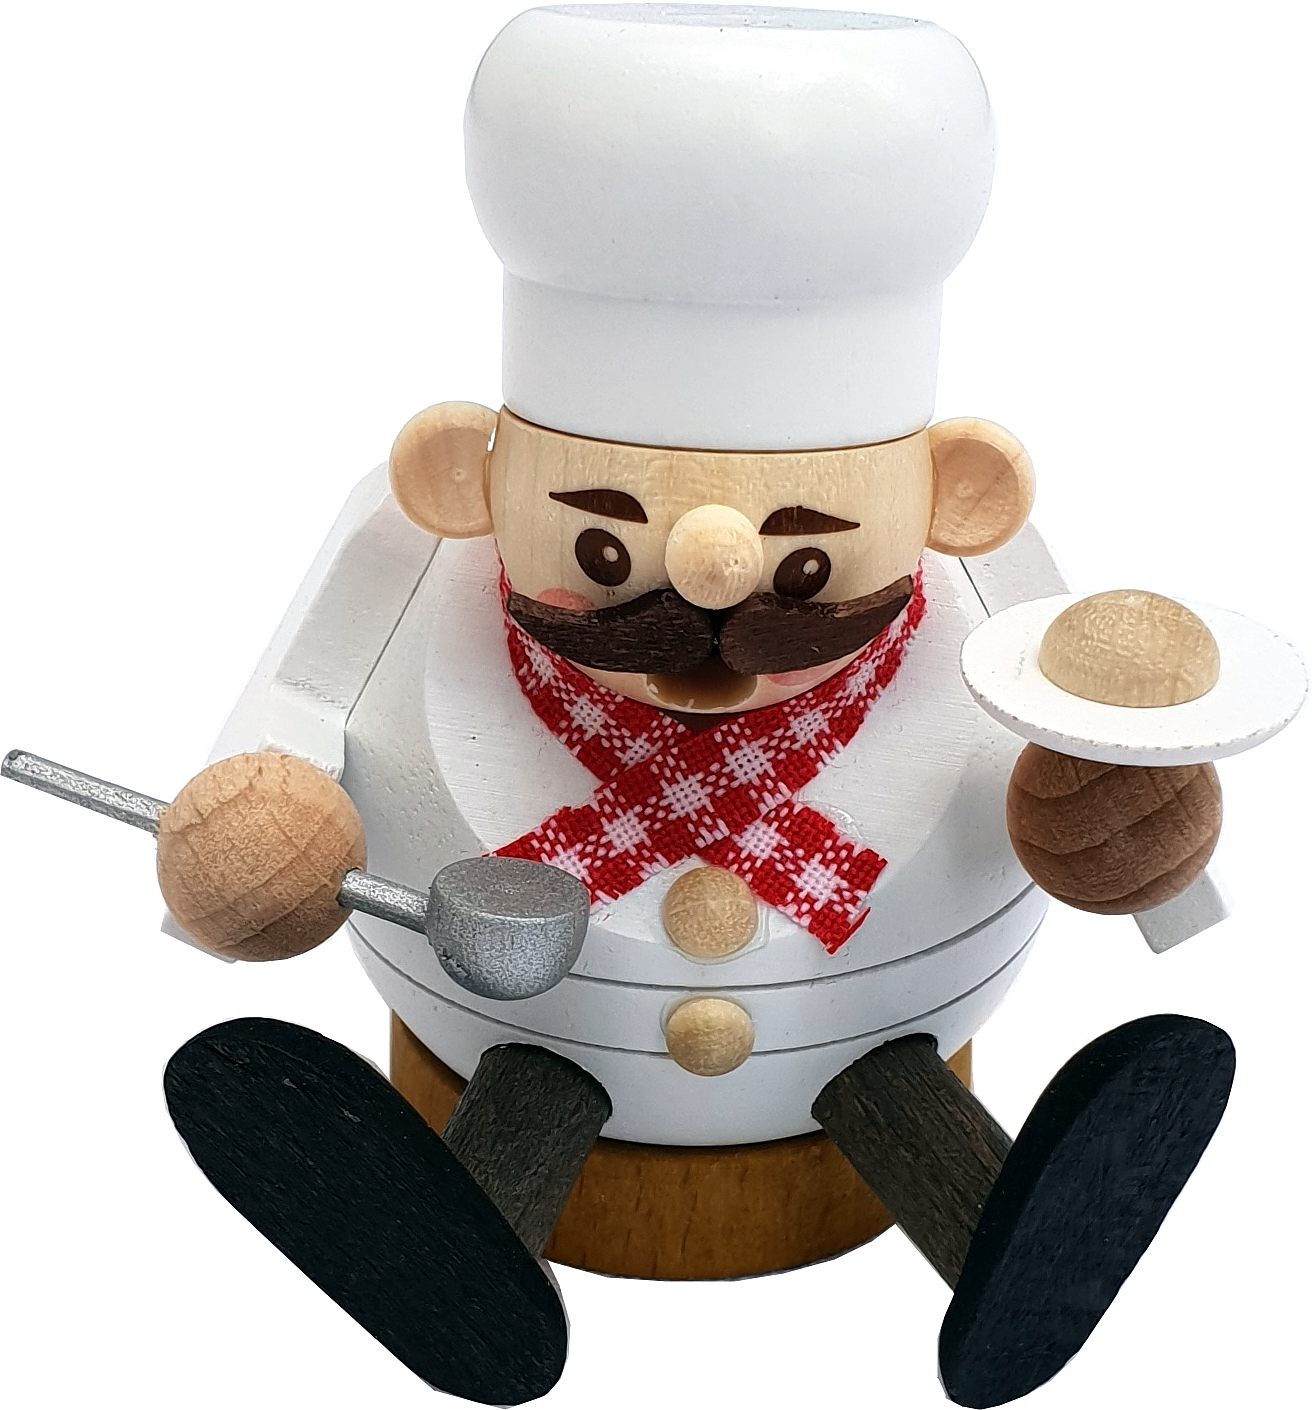 mini spheric incense smoker, chef